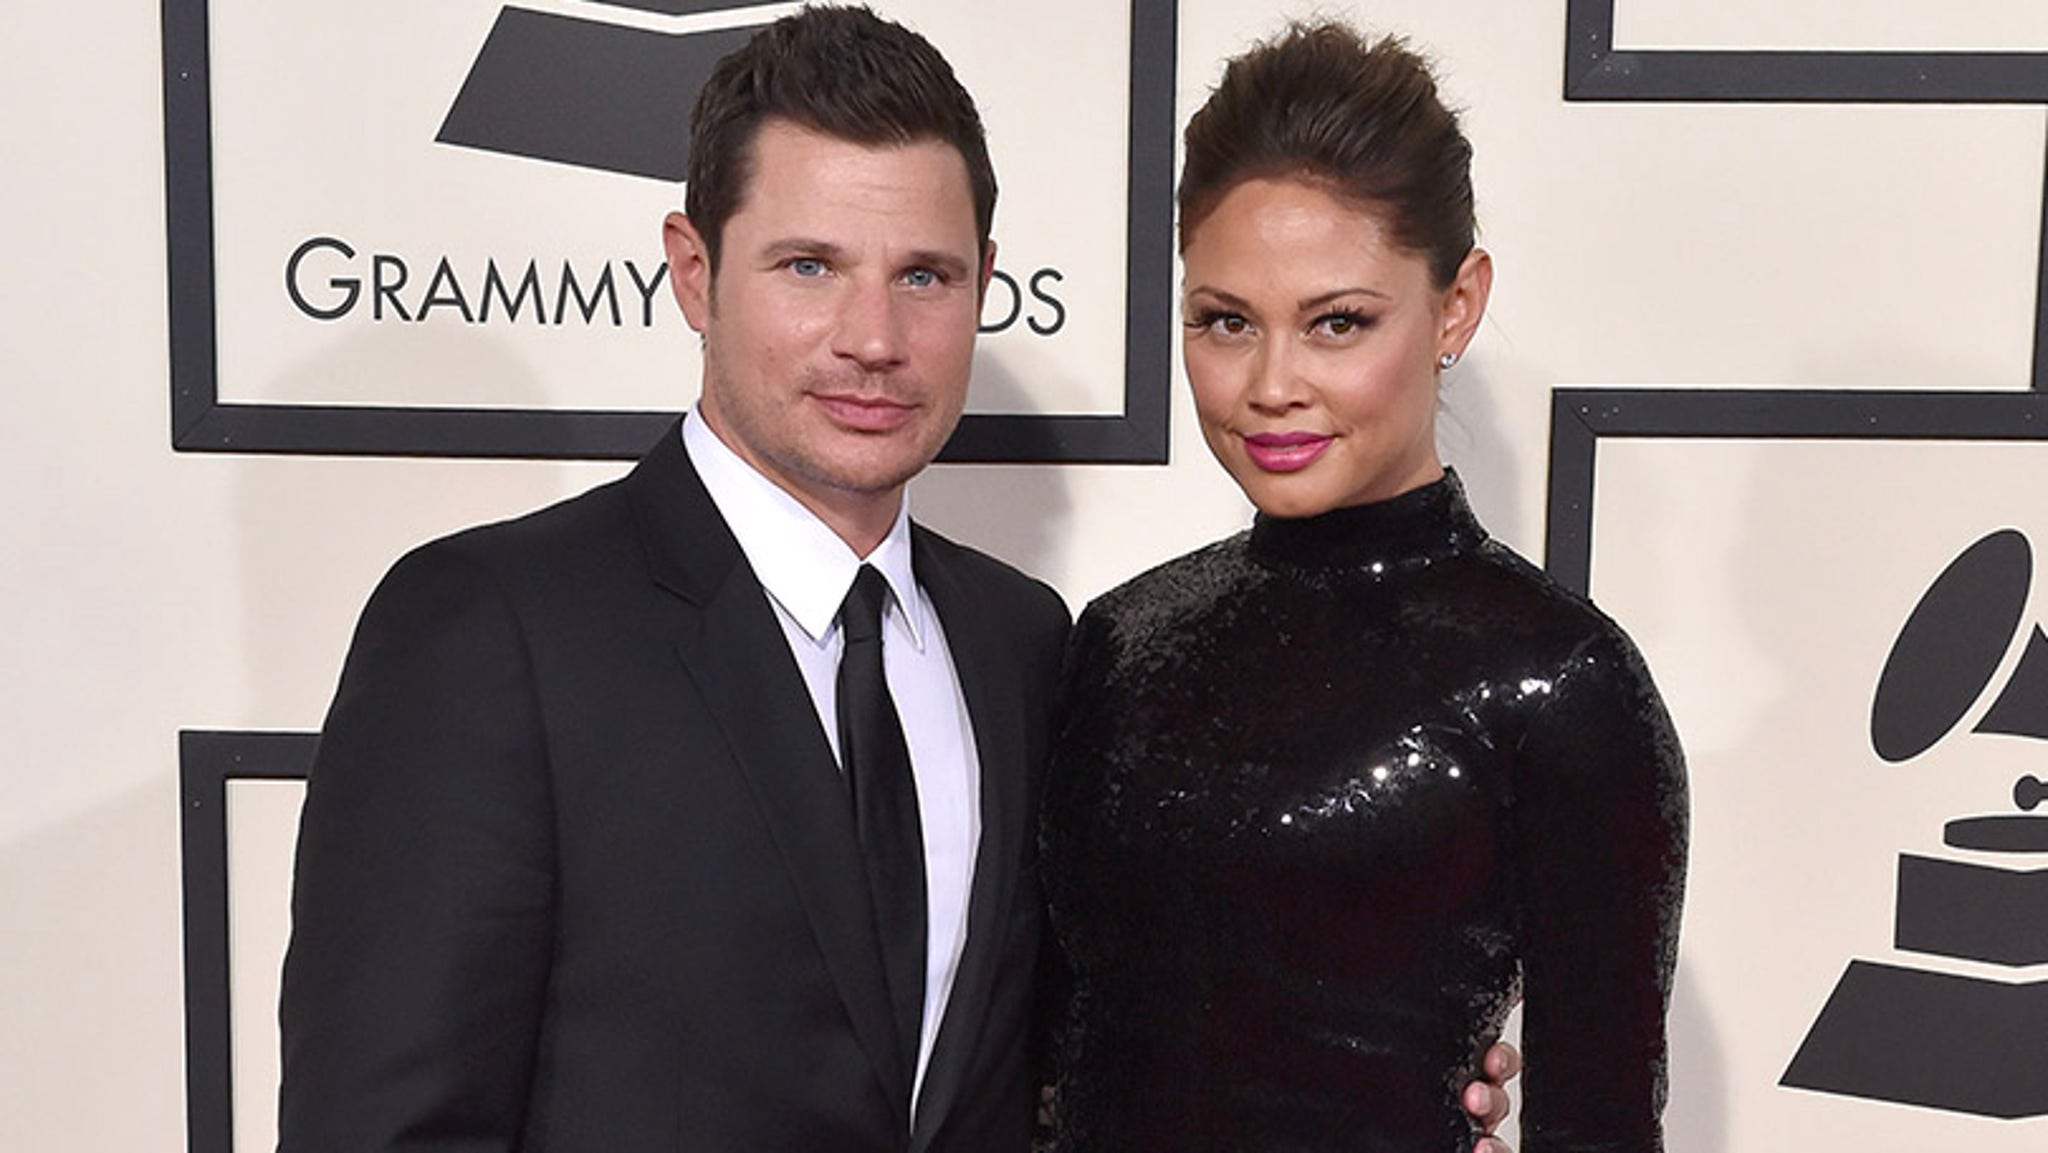 Nick Lachey Find Out Baby #3's Gender In Most Adorable Way!